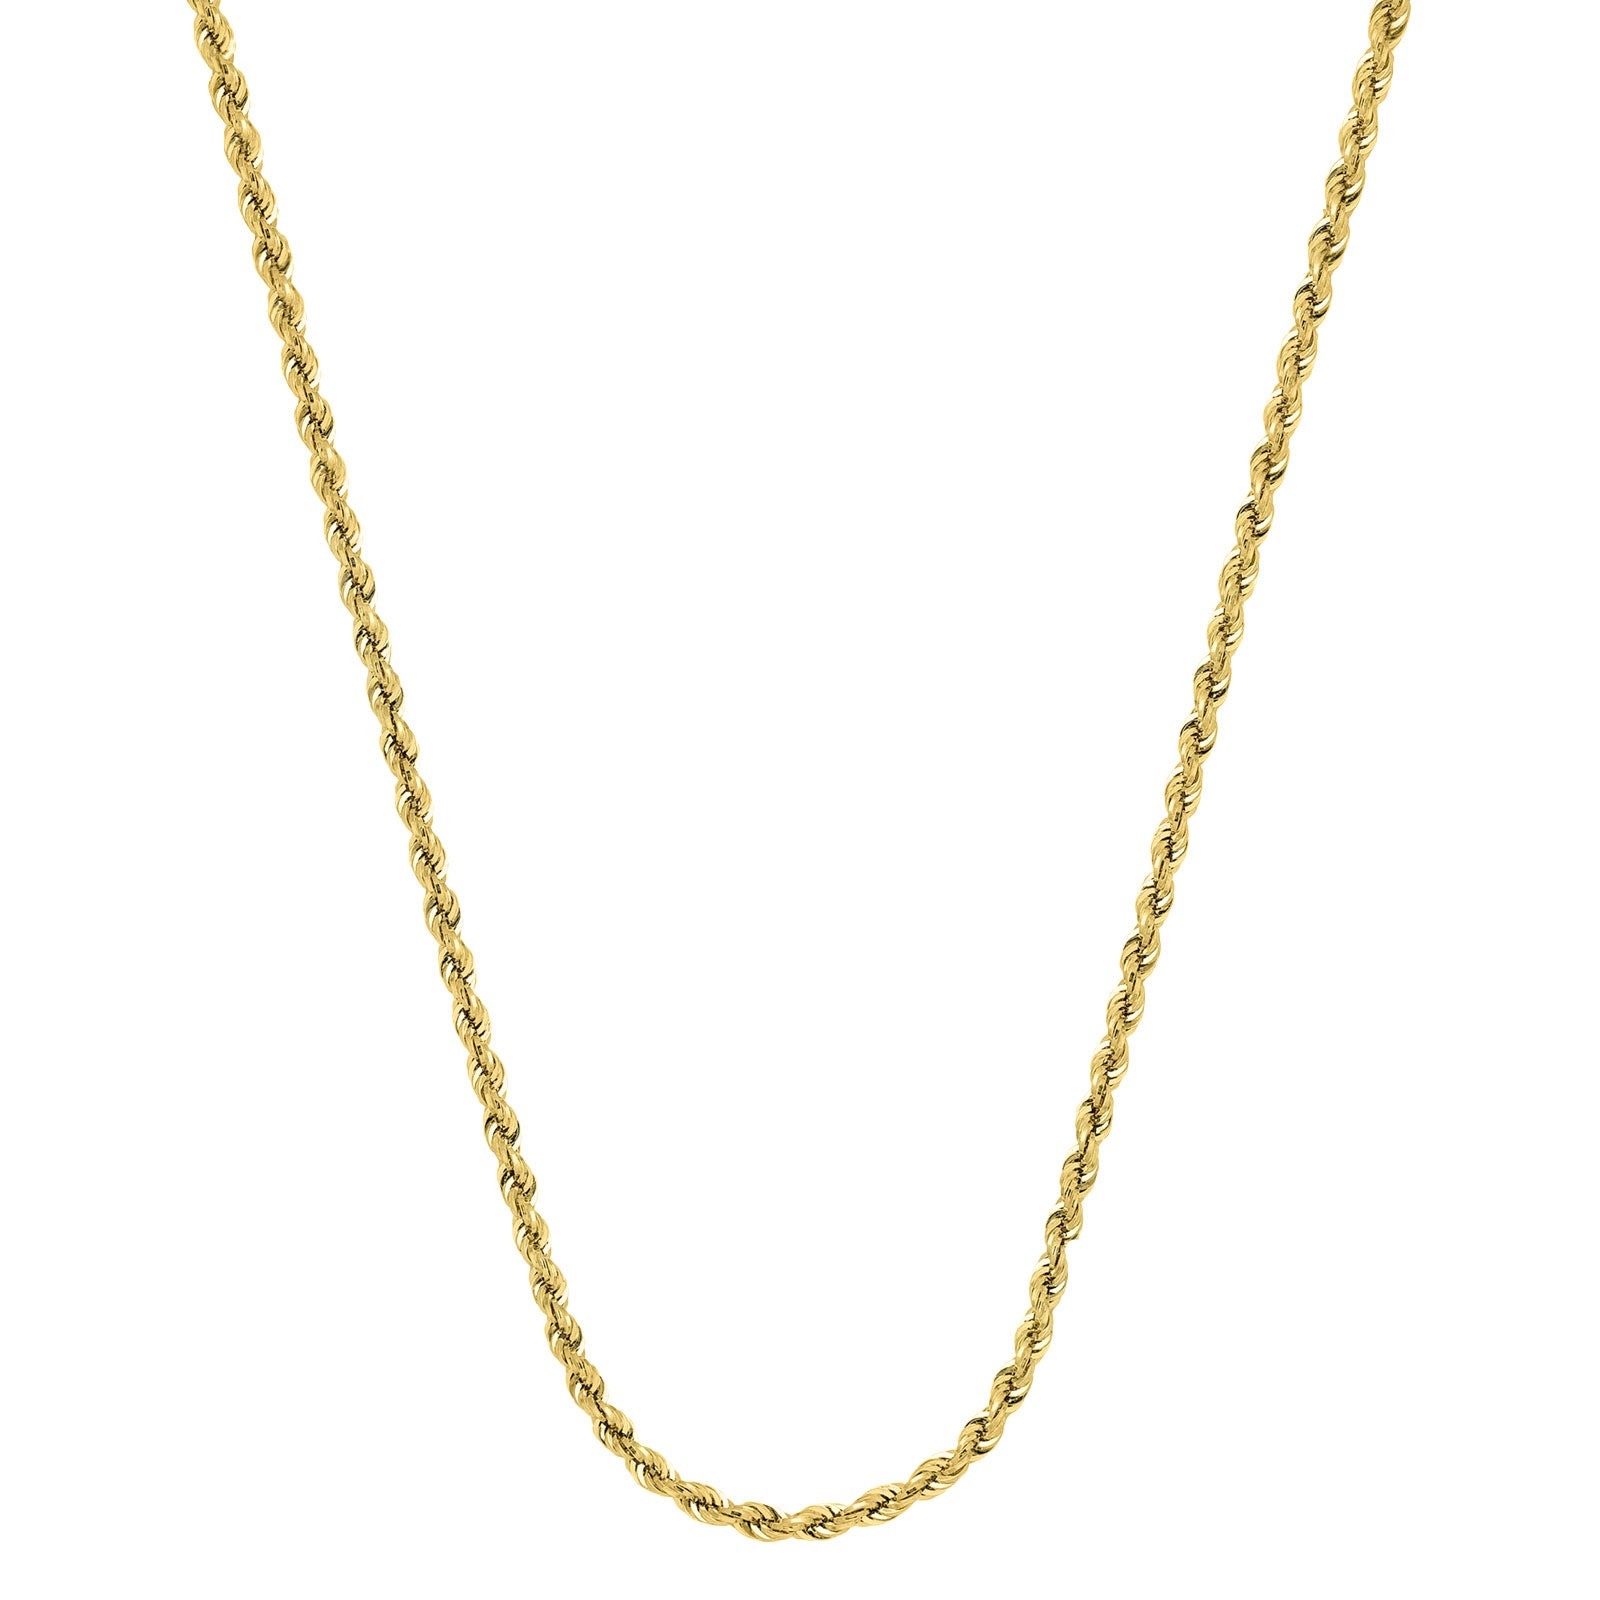 Solid Rope Chain Necklace, 18 Inches, 14K Yellow Gold